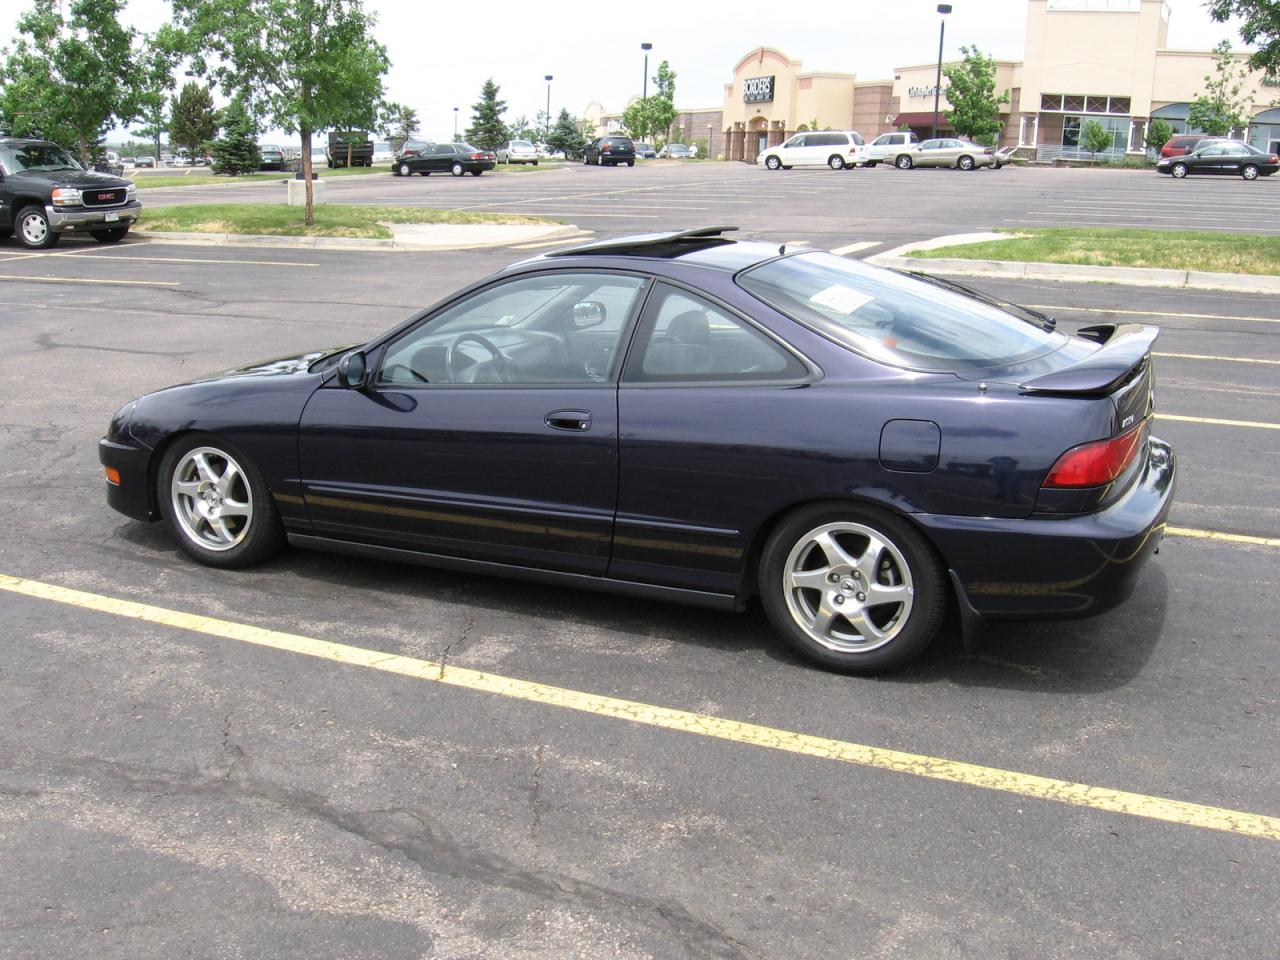 2000 acura integra information and photos zombiedrive. Black Bedroom Furniture Sets. Home Design Ideas